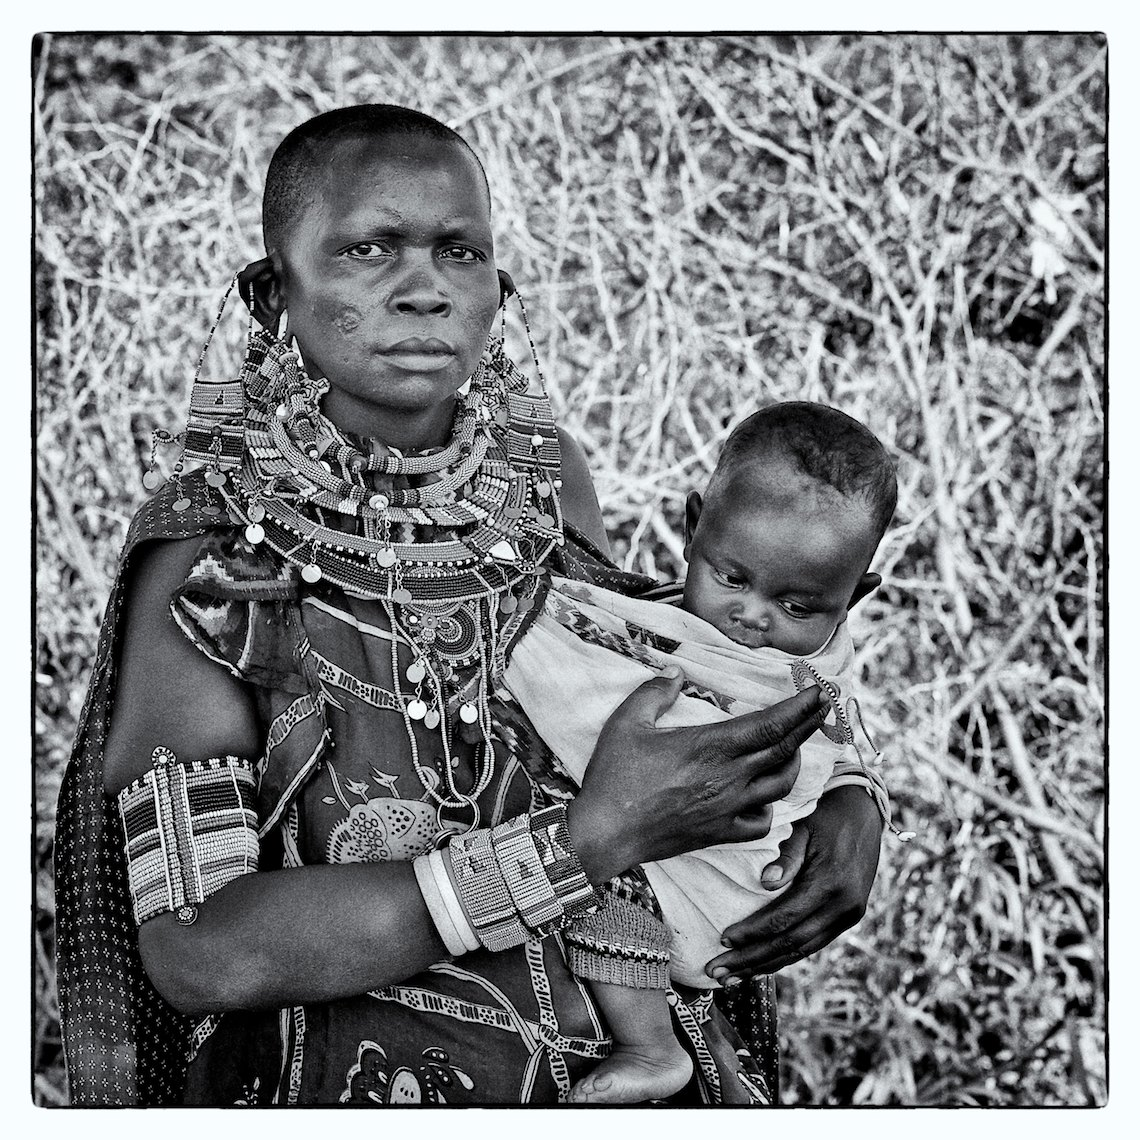 Kenya Amboseli Massai portrait mother and child